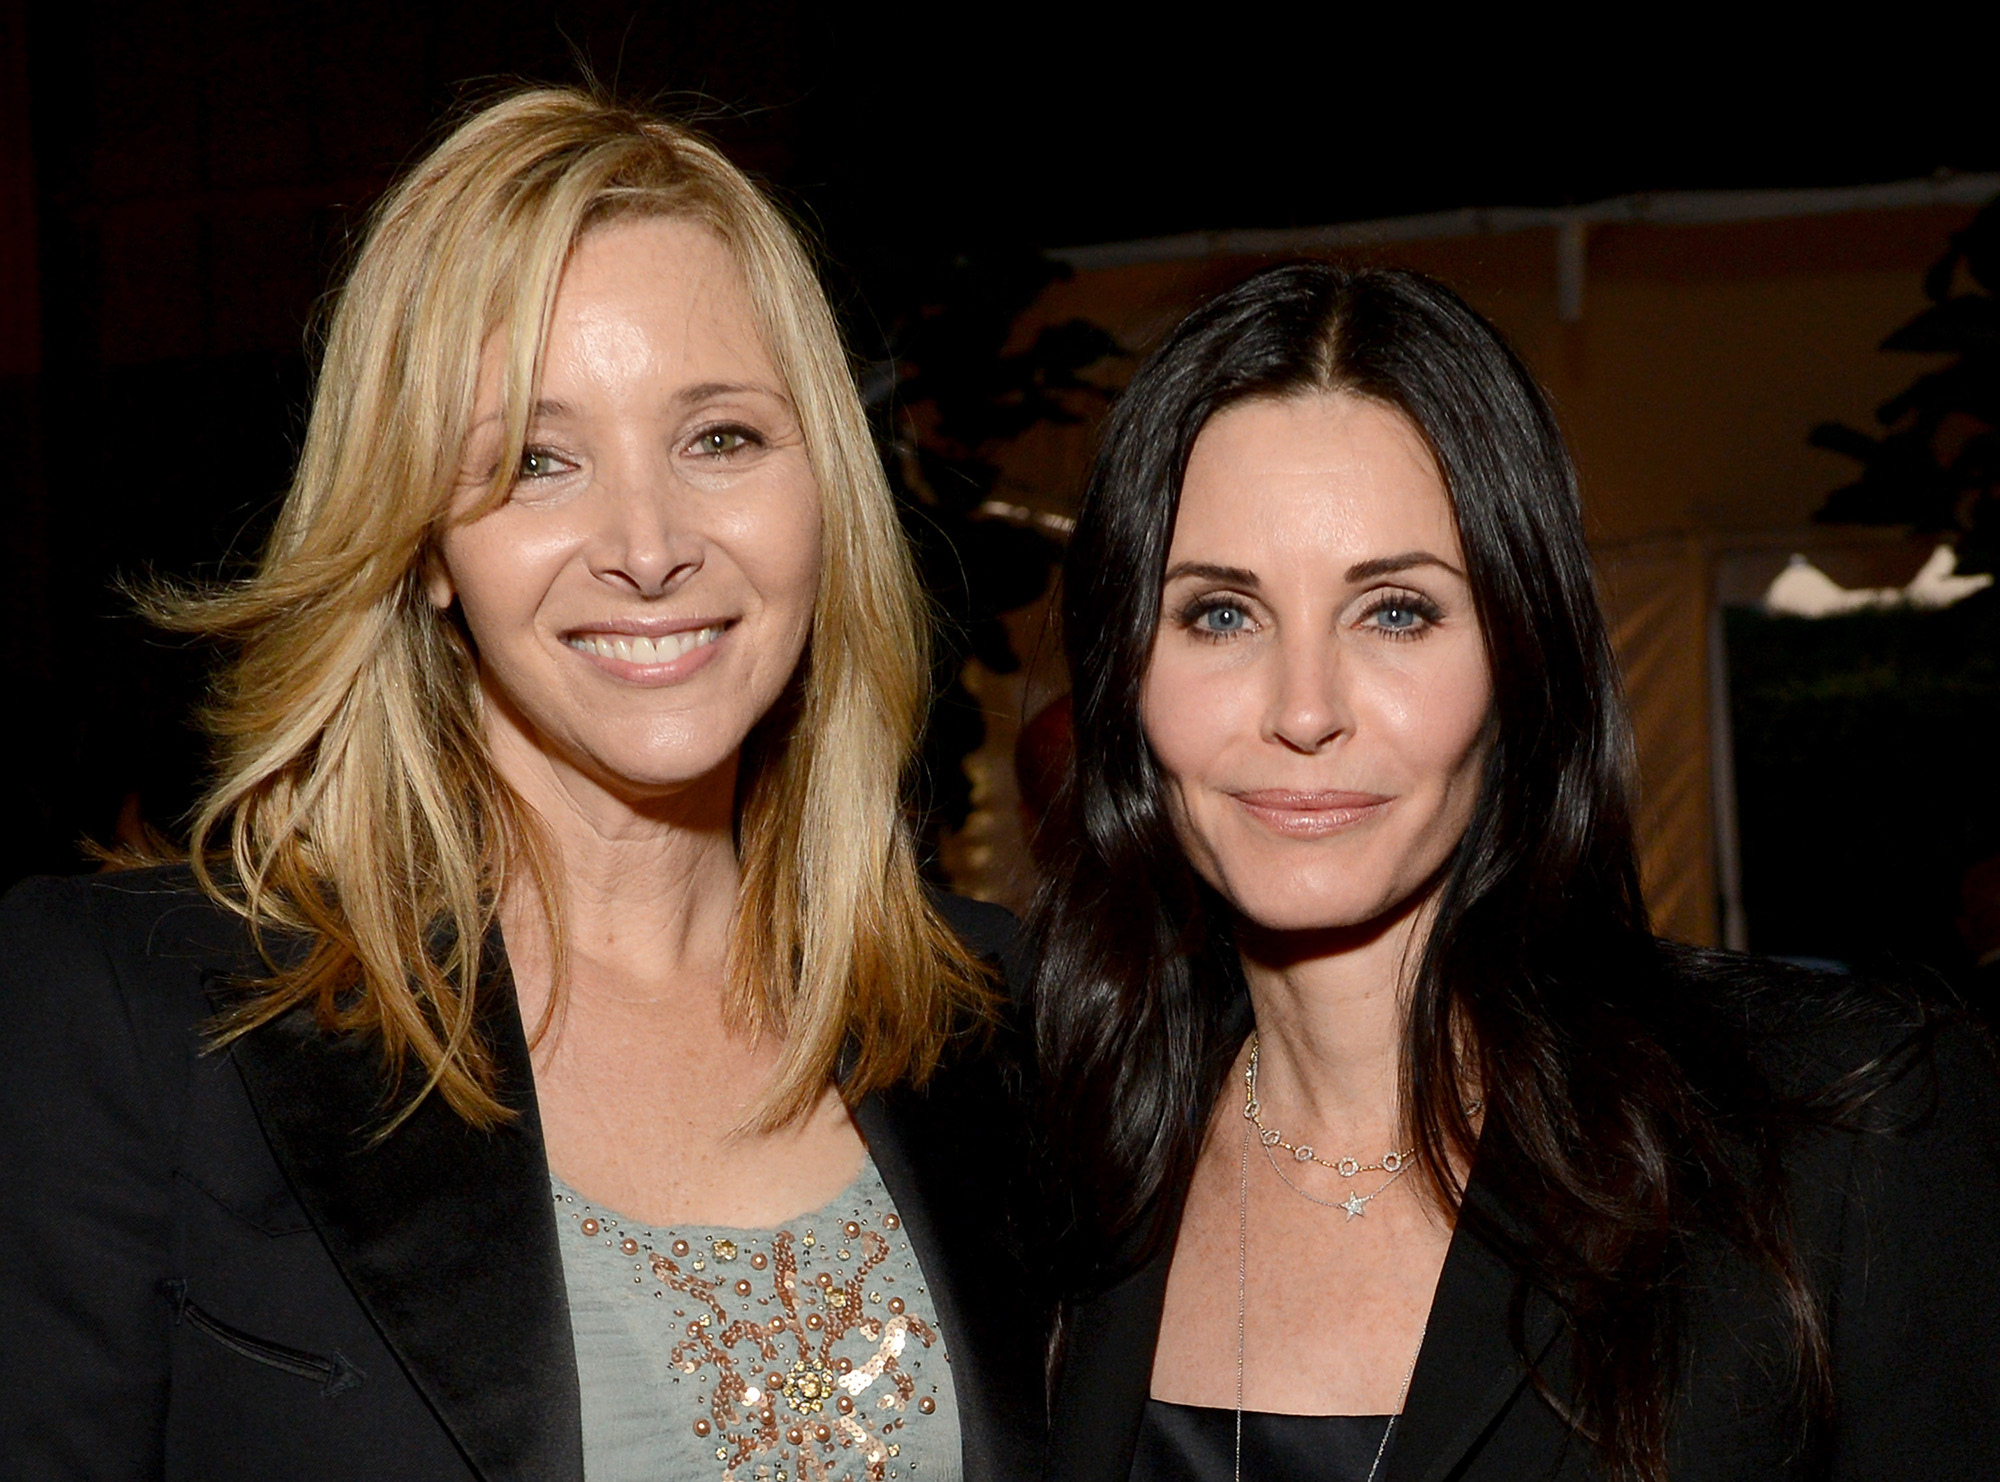 Lisa Kudrow and Courteney Cox attend LA Modernism Show on April 25, 2013 in Santa Monica, California.  (Photo by Michael Kovac/Getty Images for P.S. Arts)